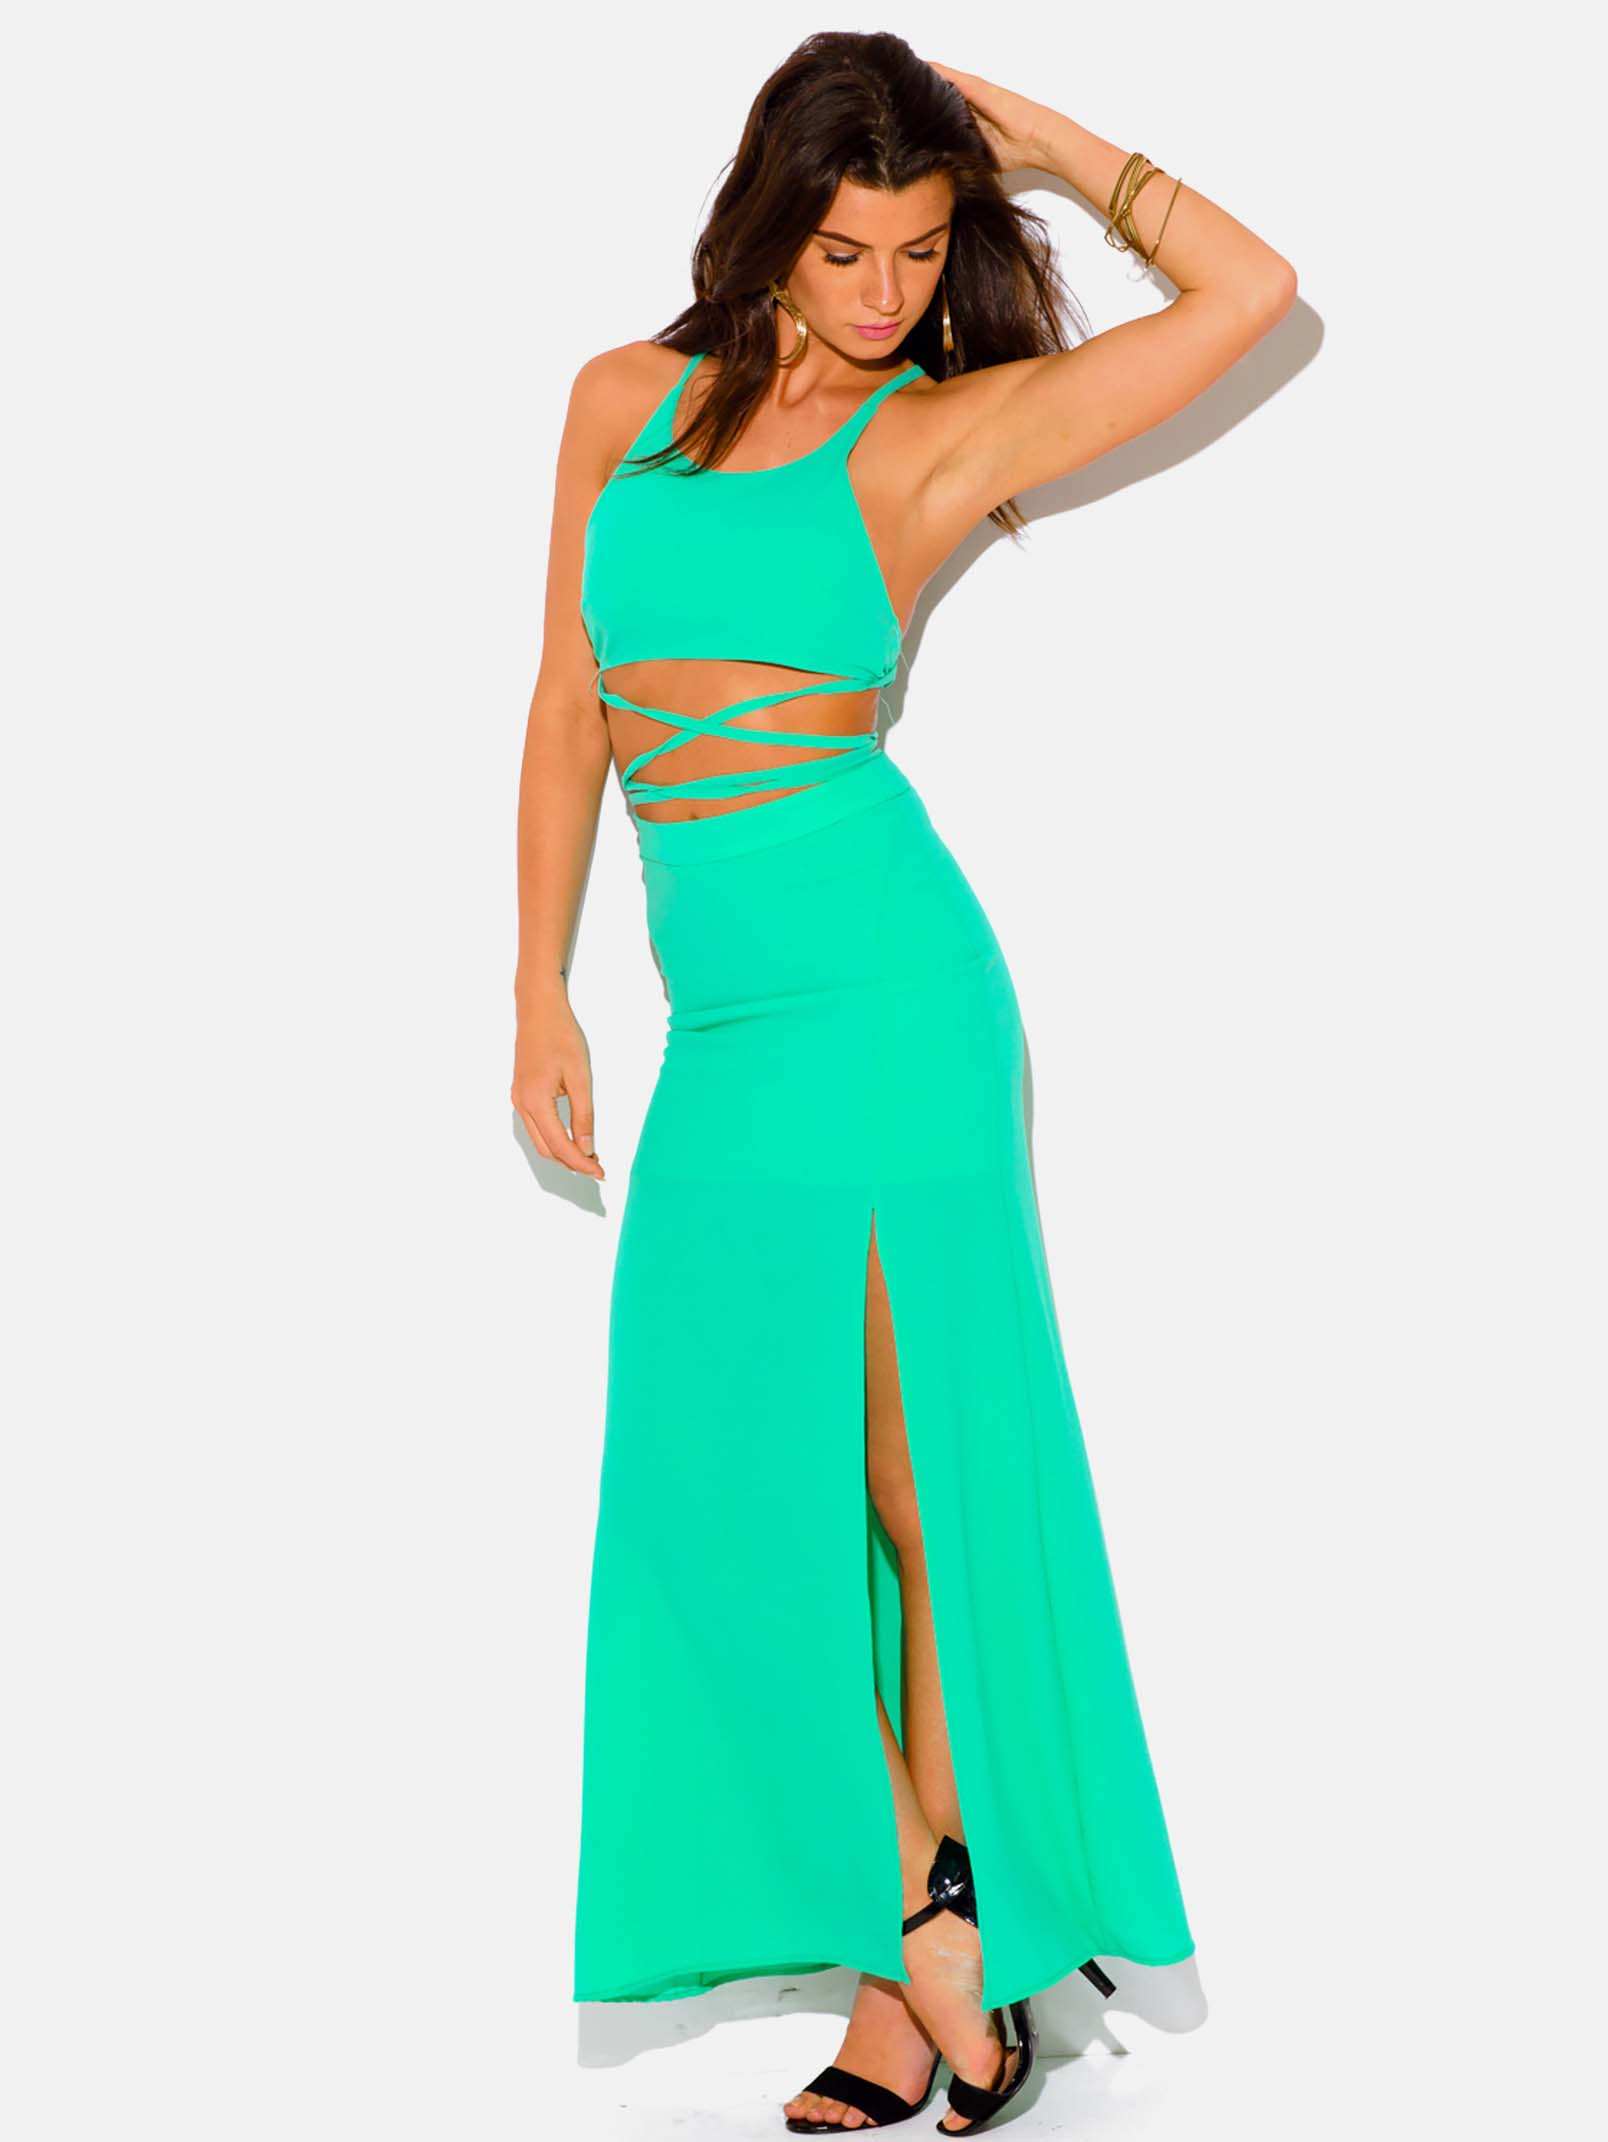 Outstanding Maxi Dresses For Evening Party Pictures - All Wedding ...